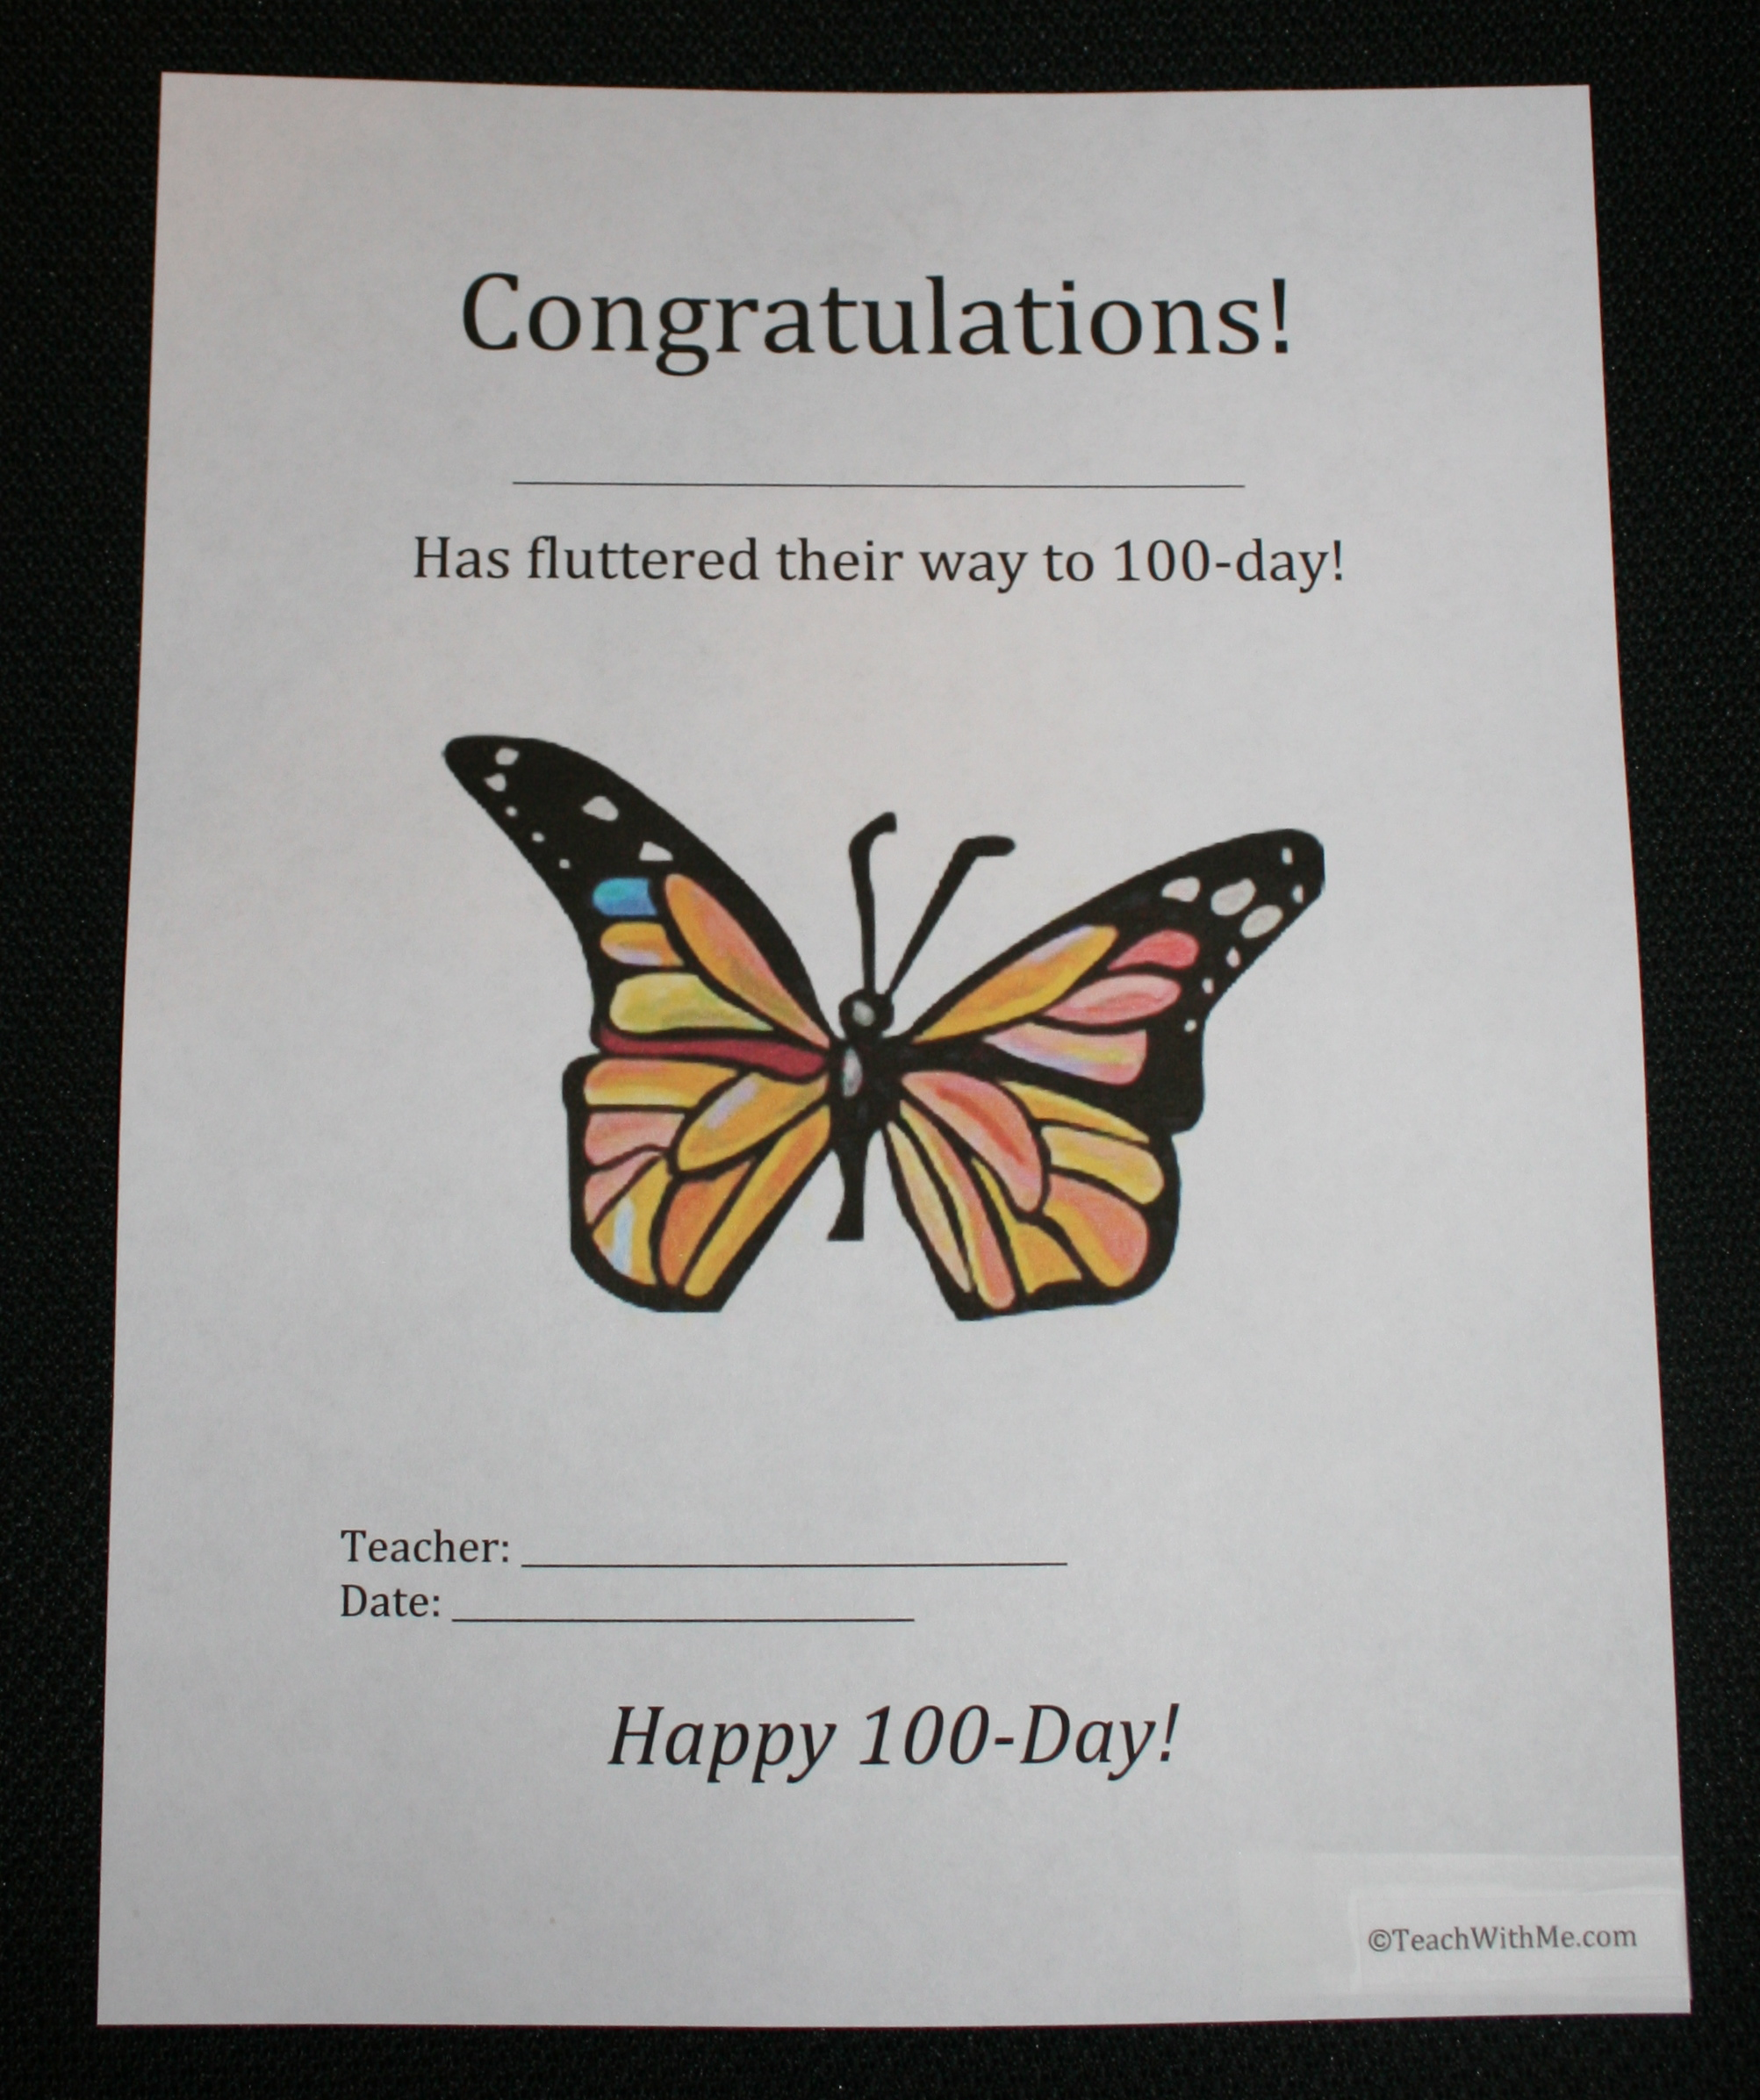 back to school ideas, ideas for the first day of school, ideas for counting to 100 day, september bulletin board ideas